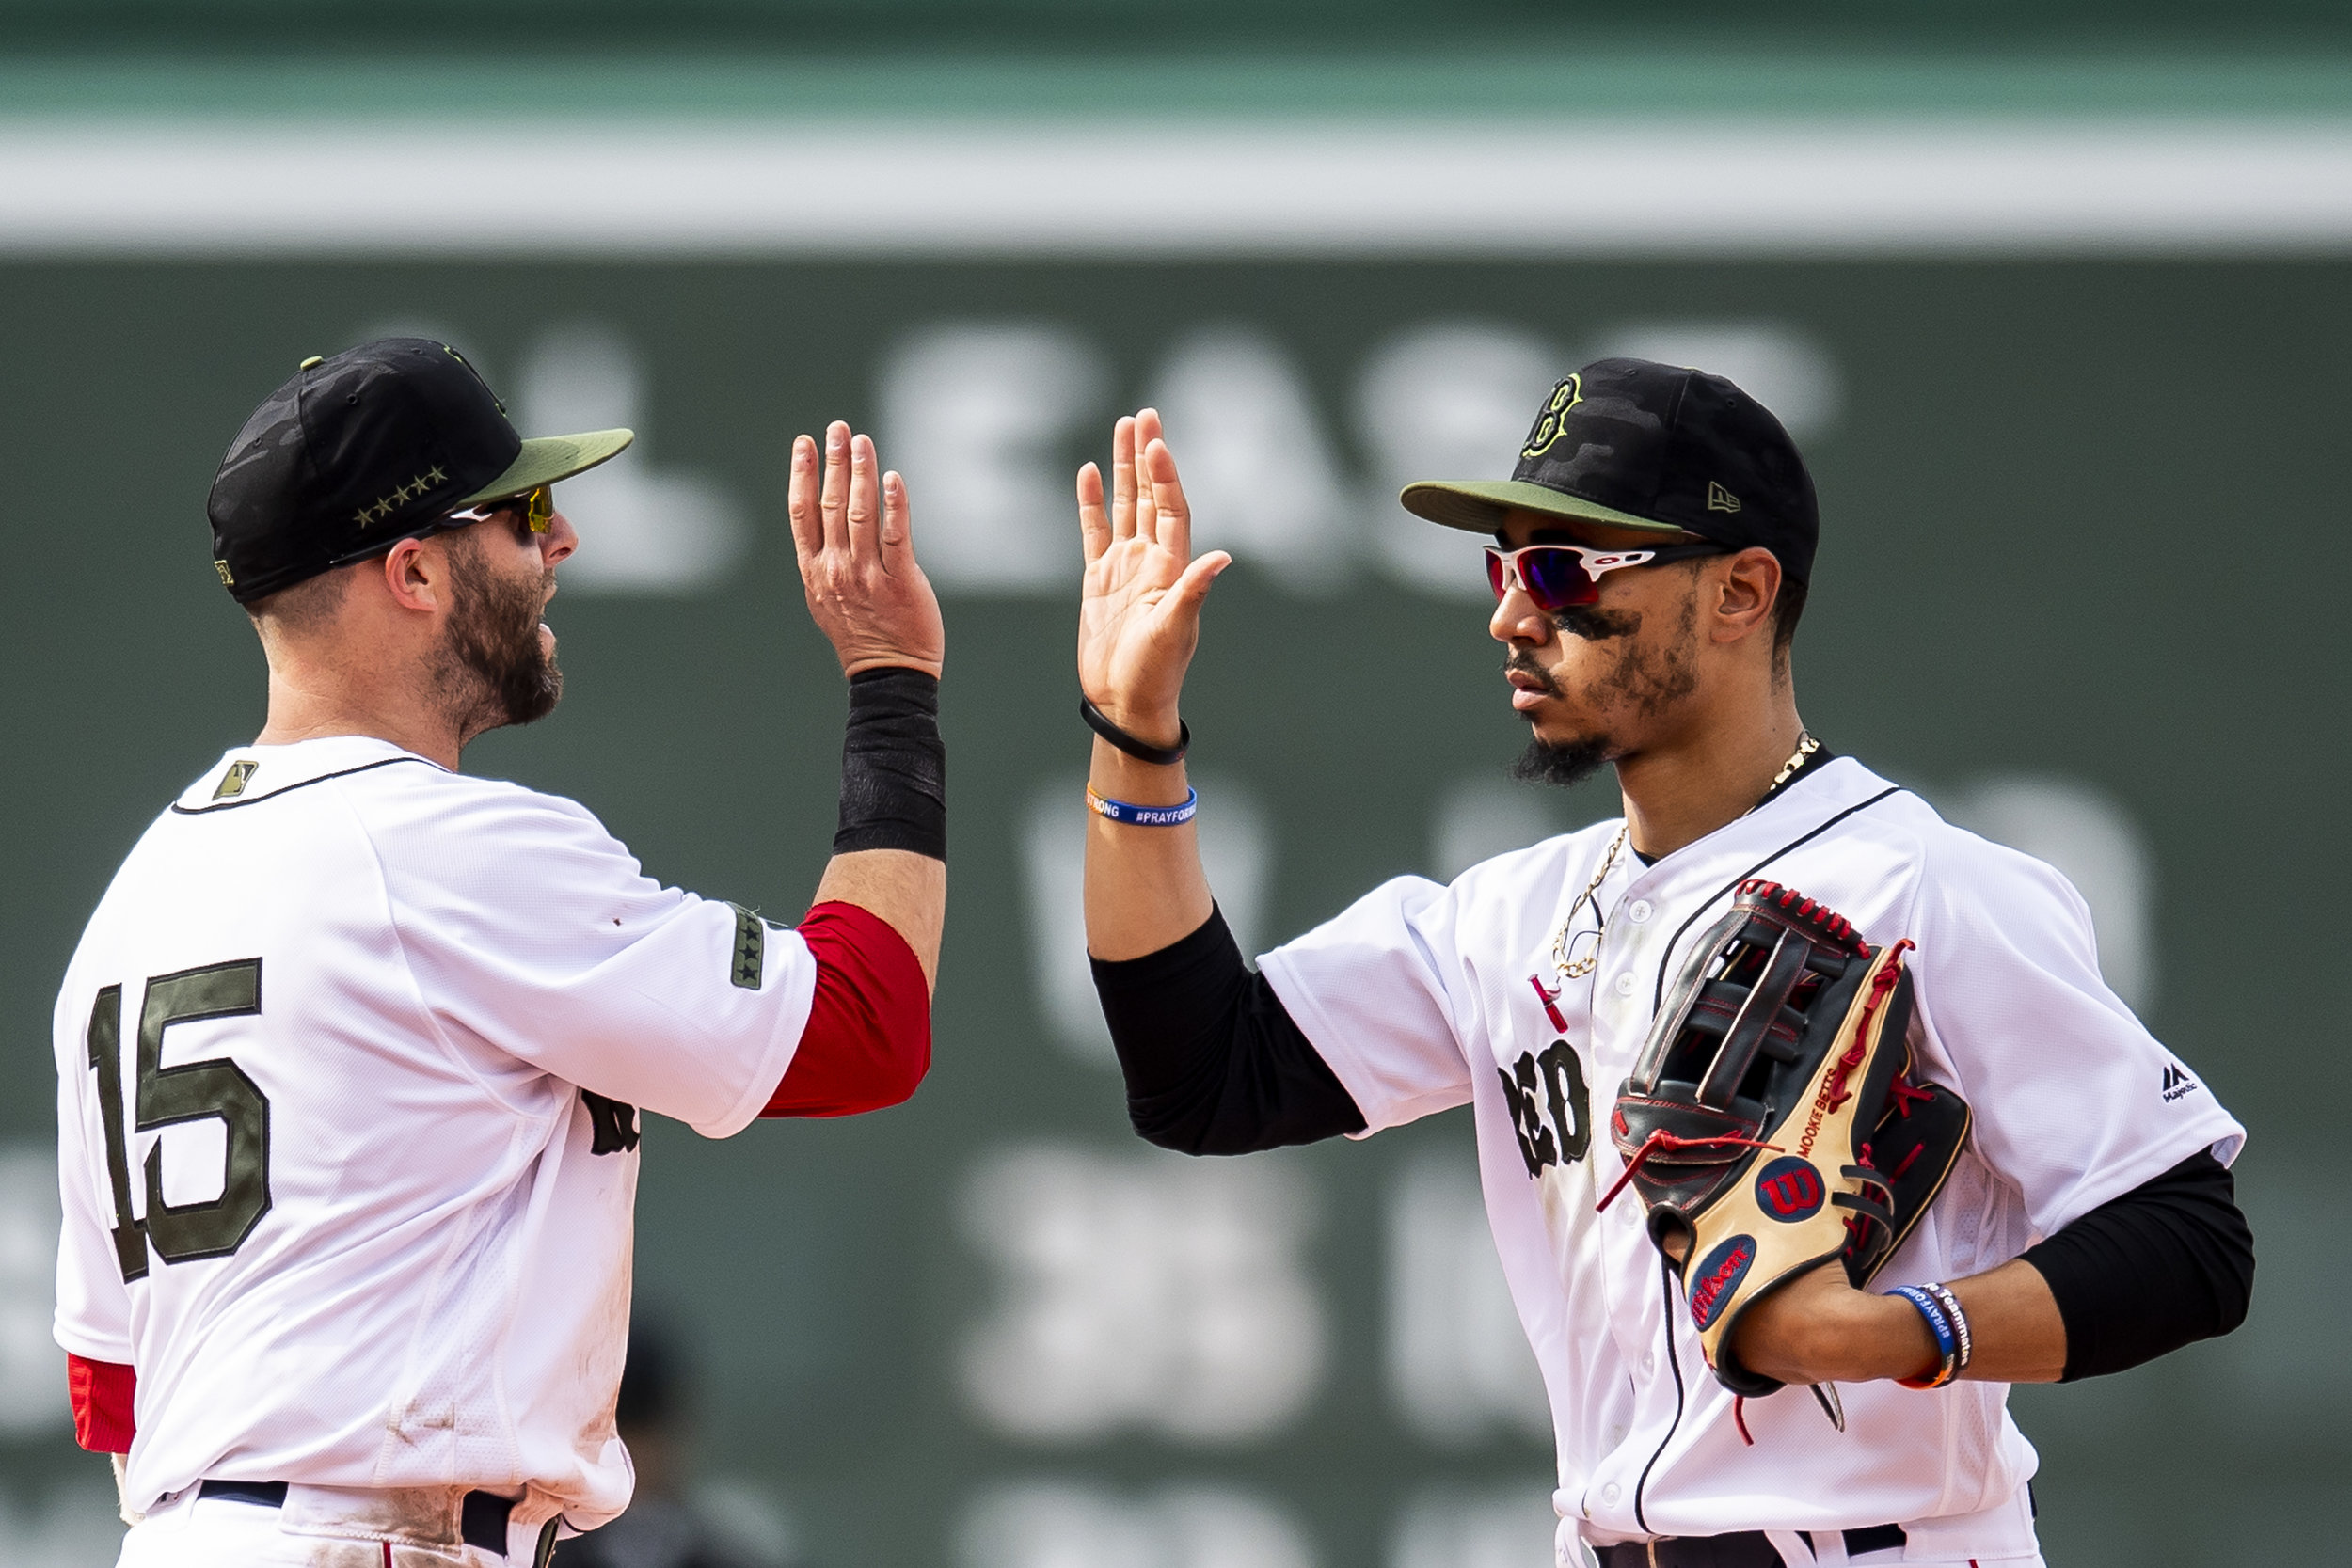 May 26, 2018, Boston, MA: Boston Red Sox second basemen Dustin Pedroia and Boston Red Sox outfielder Mookie Betts high-fives after  the Boston Red Sox defeated the Atlanta Braves at Fenway Park in Boston, Massachusetts on Saturday, May 26, 2018. (Photo by Matthew Thomas/Boston Red Sox)